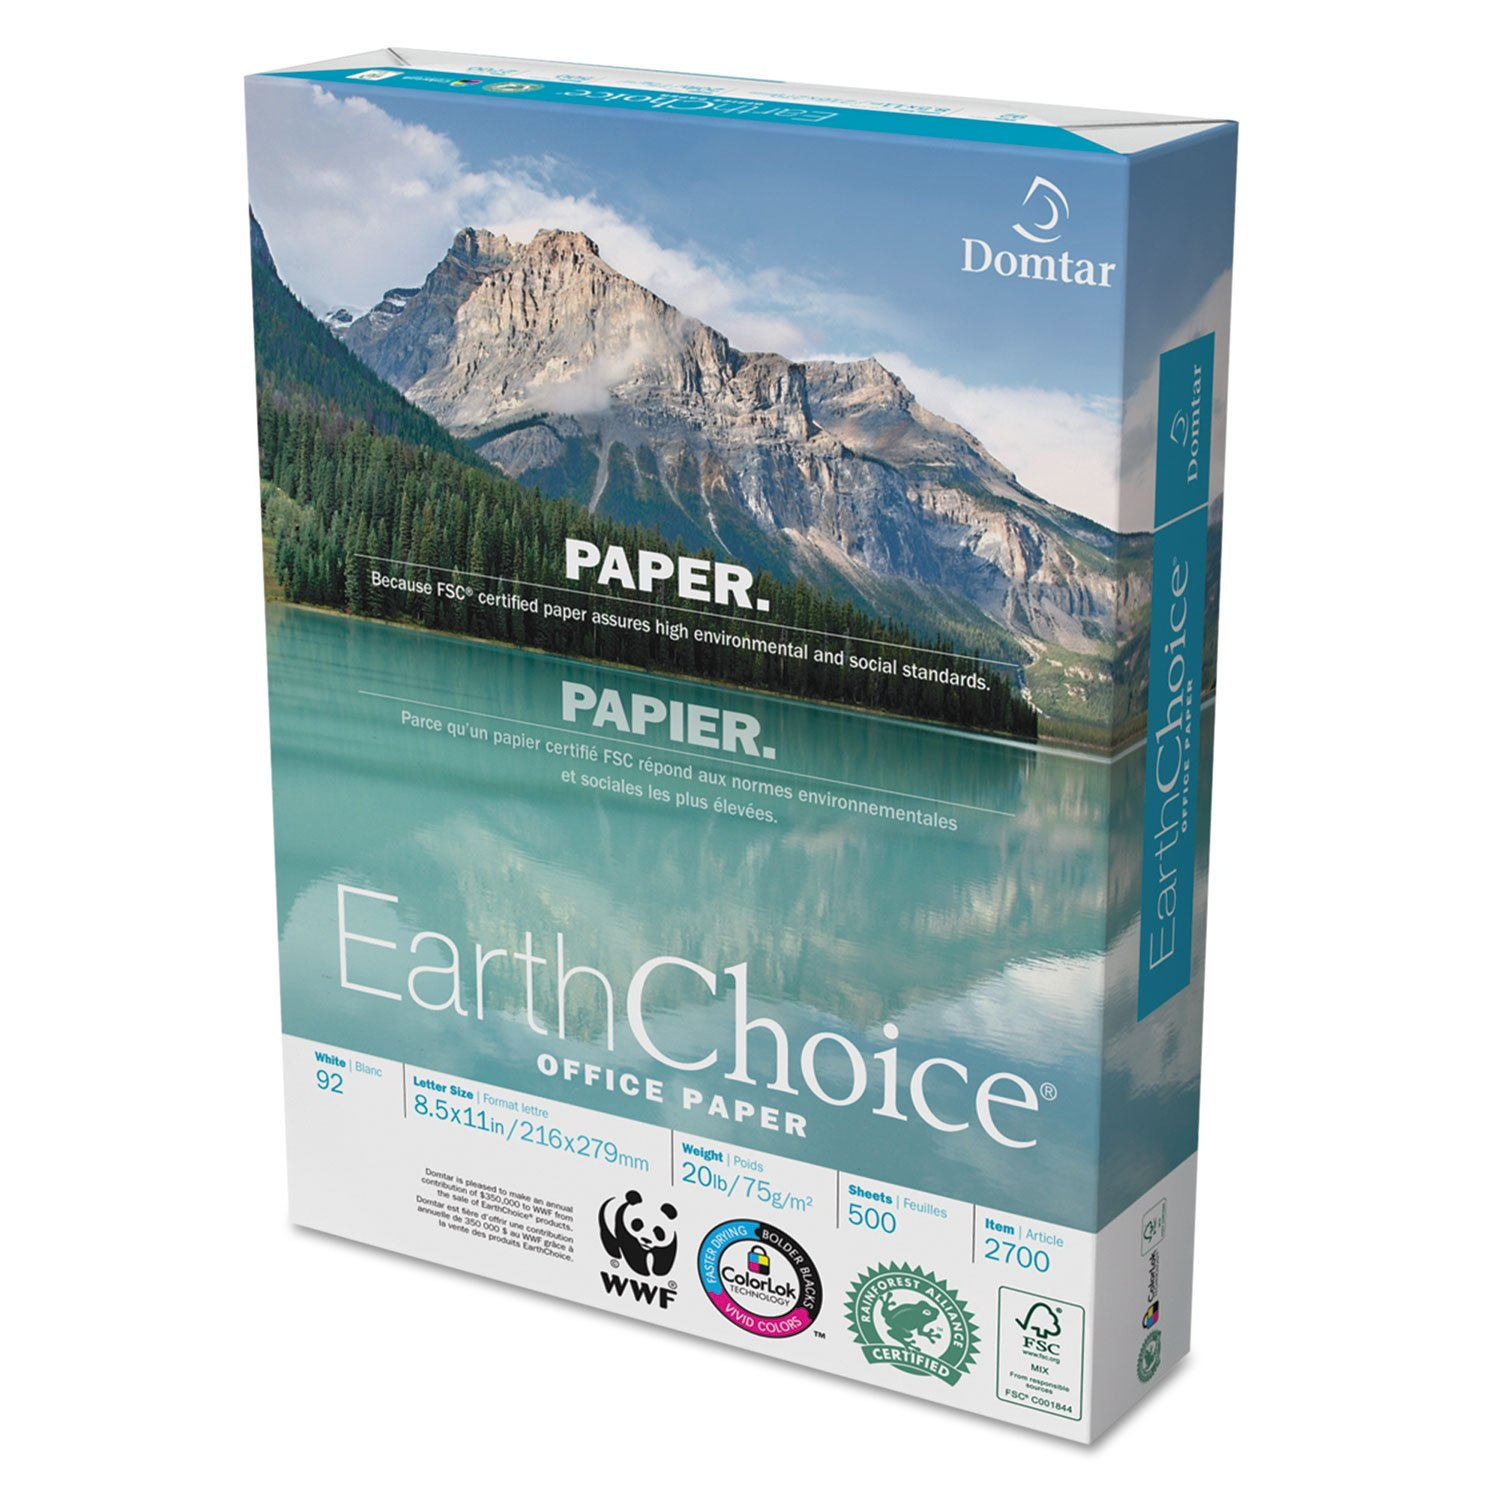 Domtar EarthChoice Office Paper (DMR2700)